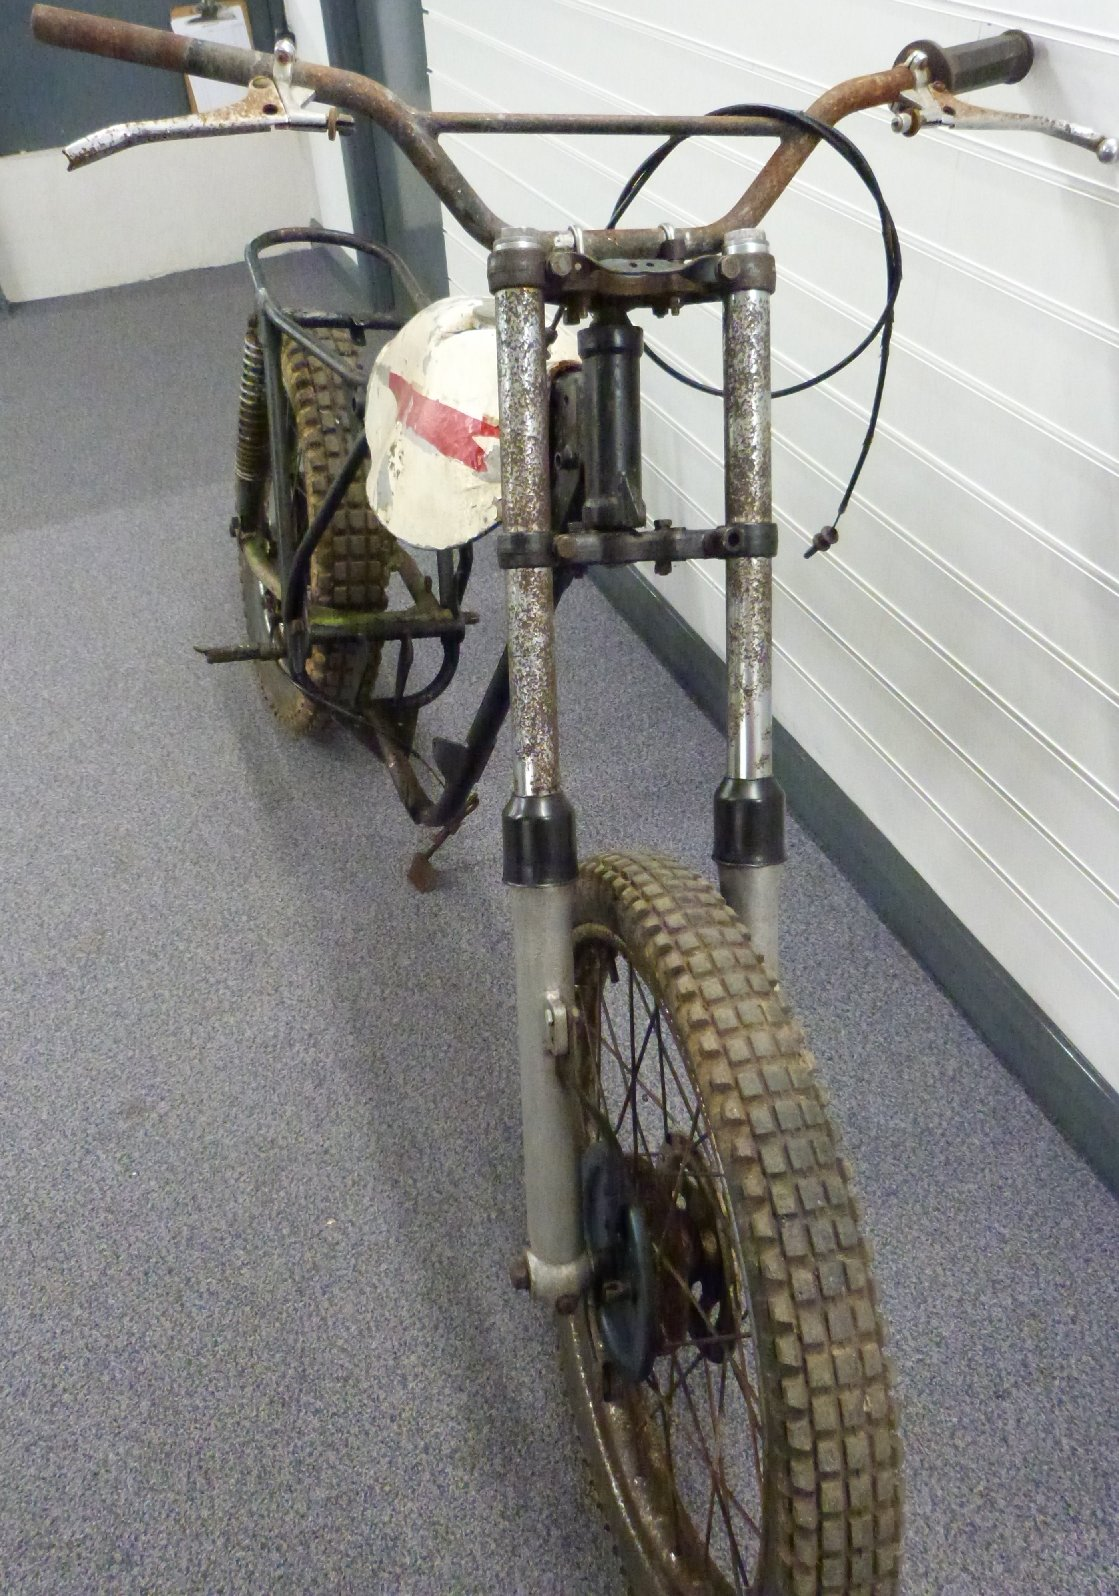 1969 Cotton 37A lightweight trail motorcycle proje For Sale by Auction (picture 3 of 3)